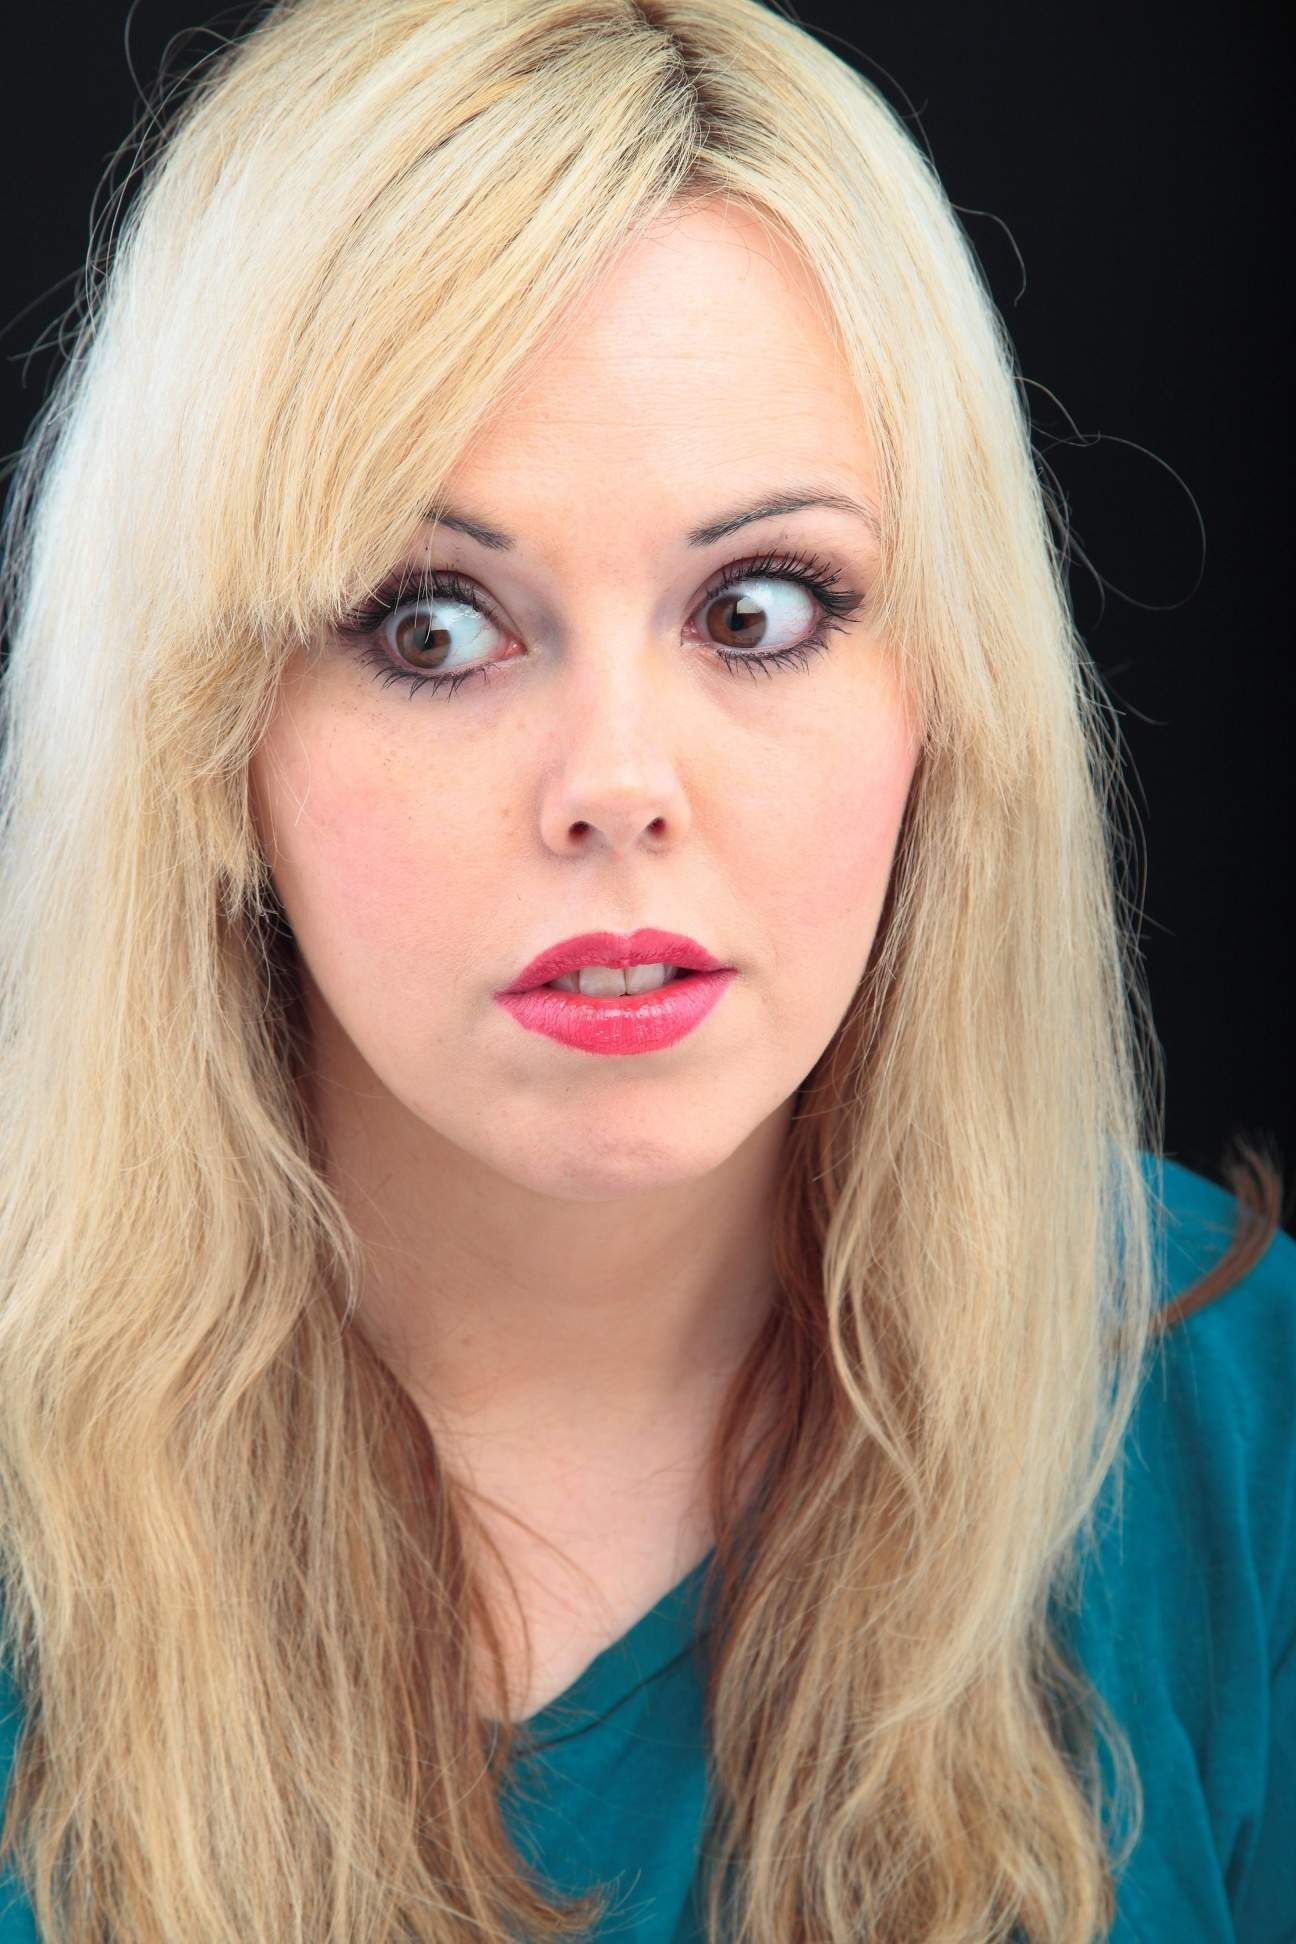 Roisin Conaty - 23-12-2014. | Celebrity portraits, Celebrities female,  Comedians